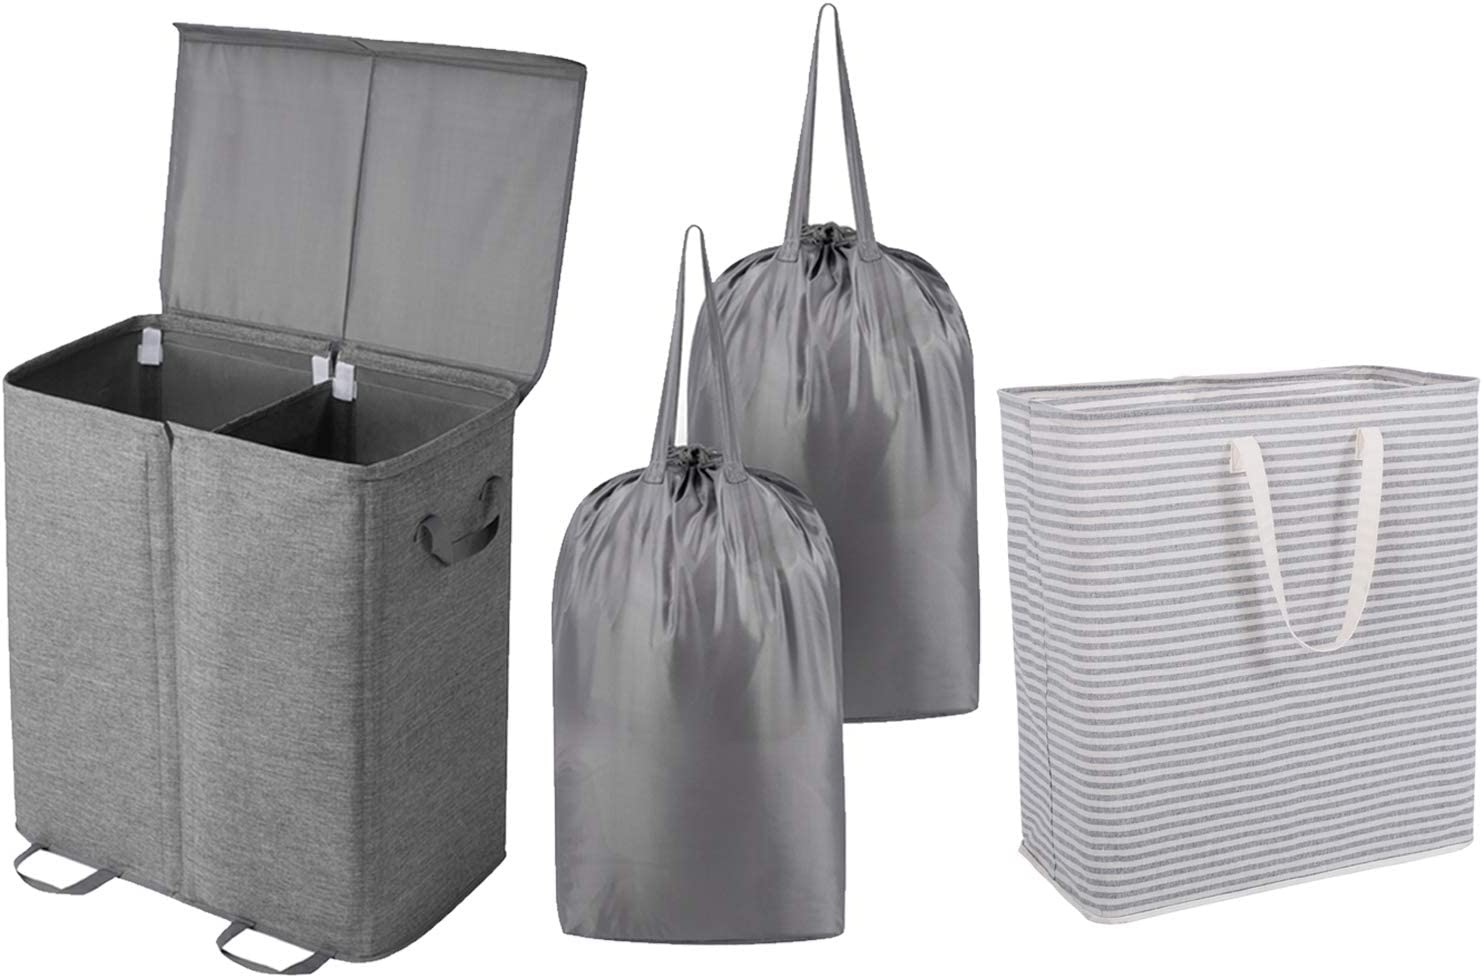 Lifewit Double Laundry Hamper with Lid and Removable Laundry Bags Grey 100L Freestanding Laundry Hamper Collapsible Extra Large Clothes Basket Grey